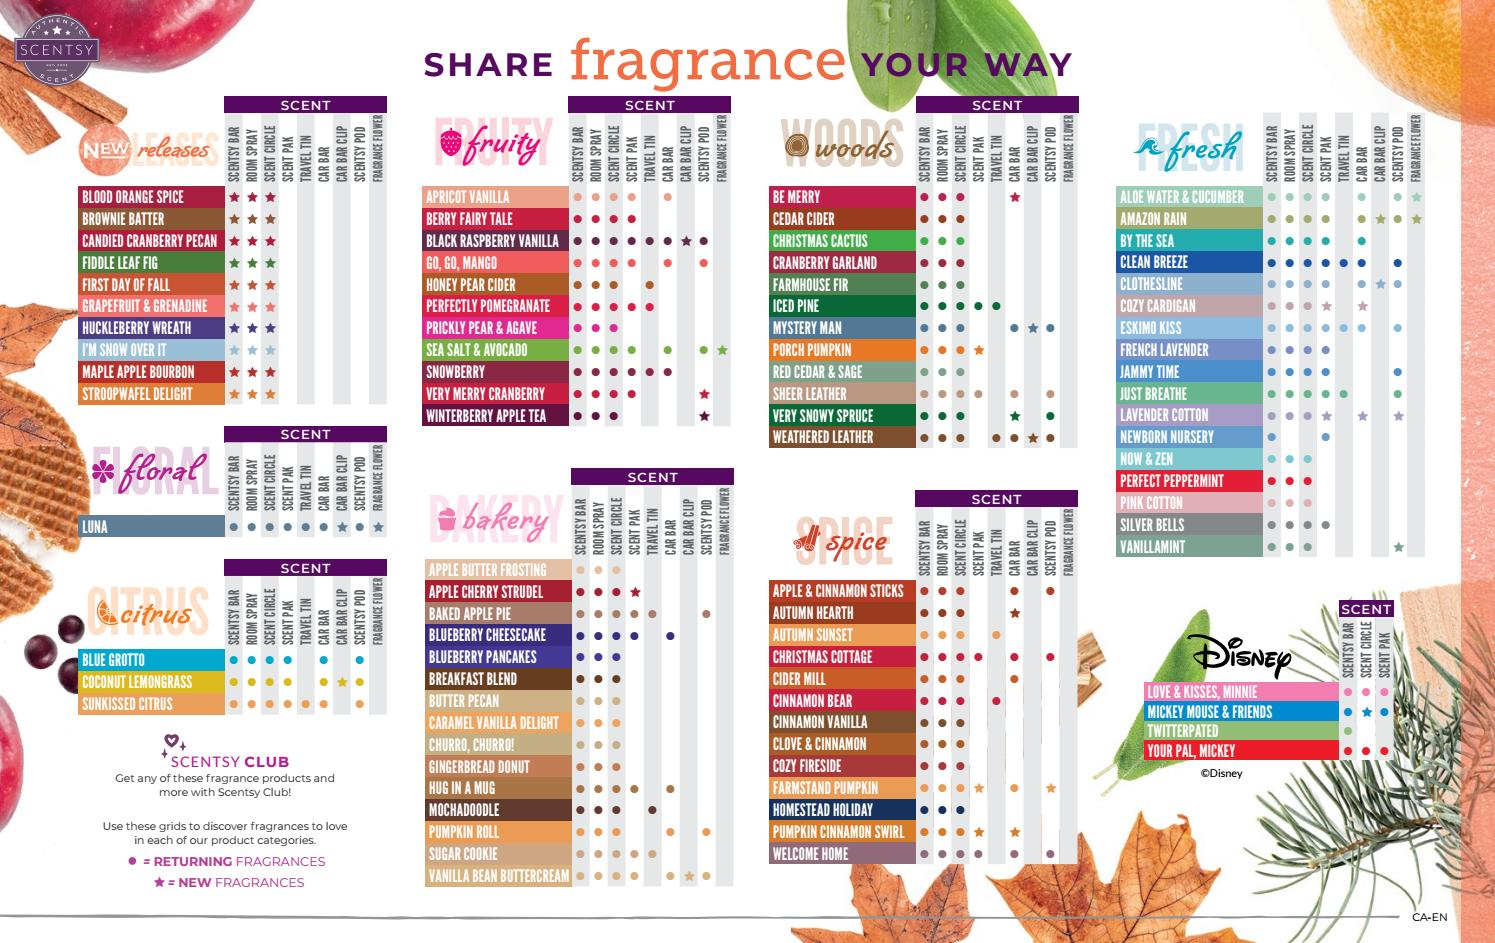 Scentsy 2019 Fall And Winter Scents By Bonny L Issuu